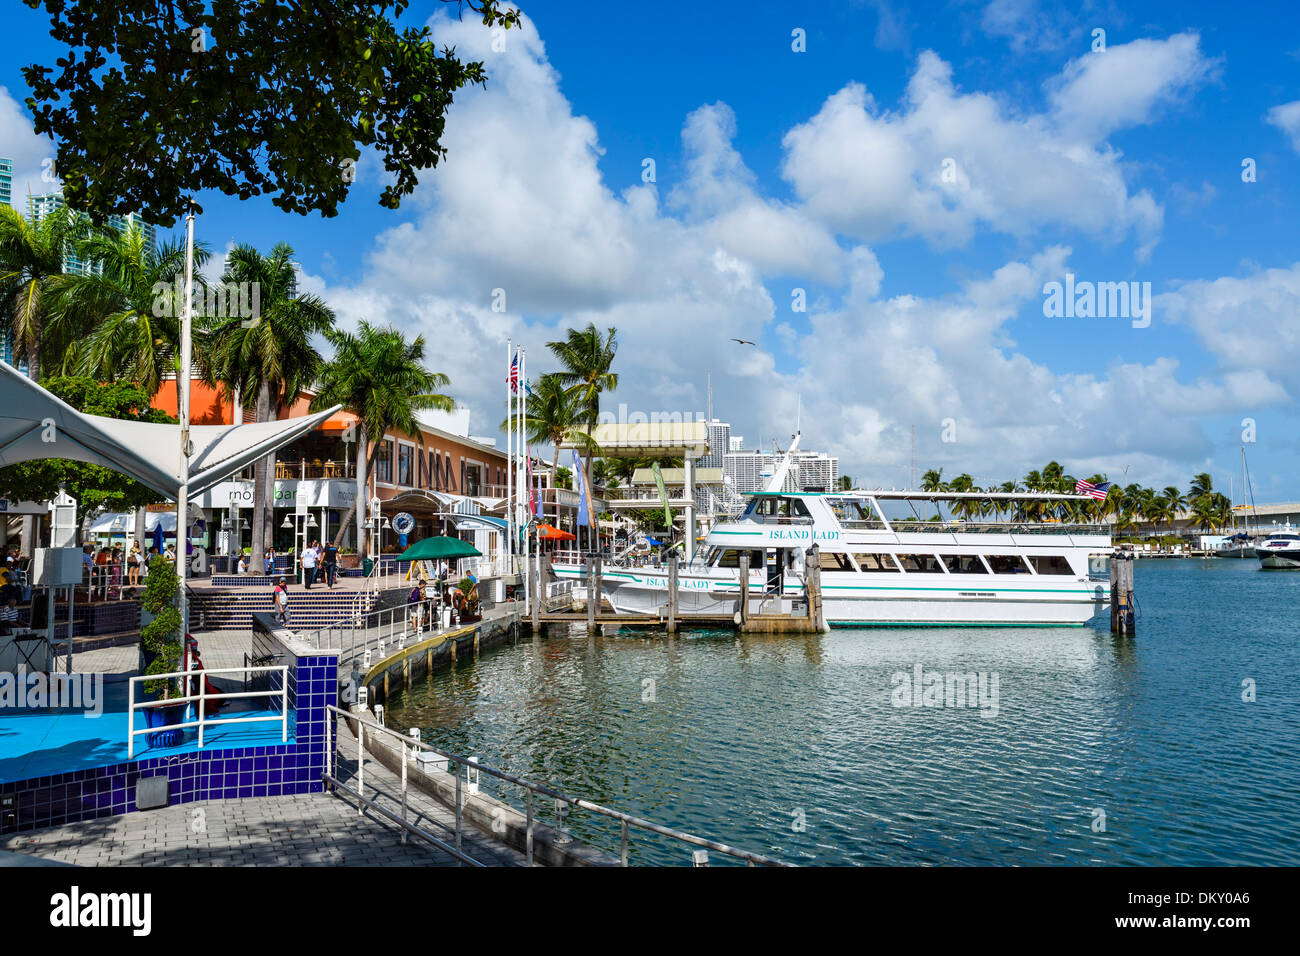 The waterfront at Bayside Marketplace in downtown Miami, Florida, USA - Stock Image